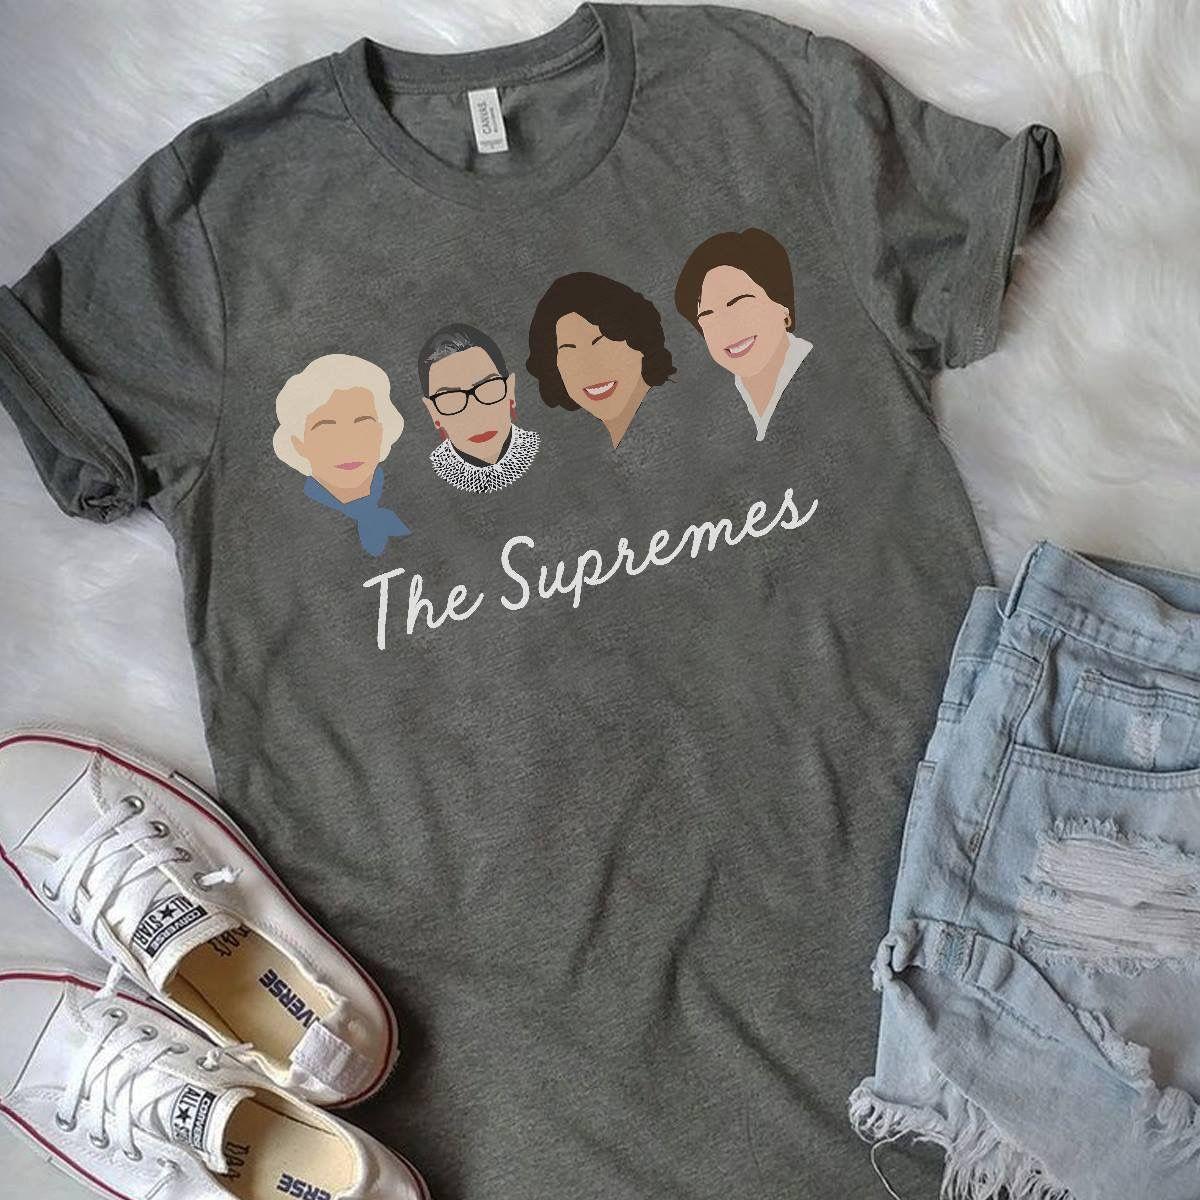 Pin By Kerbi On I Need This Court Shirt Justice Shirts T Shirts For Women